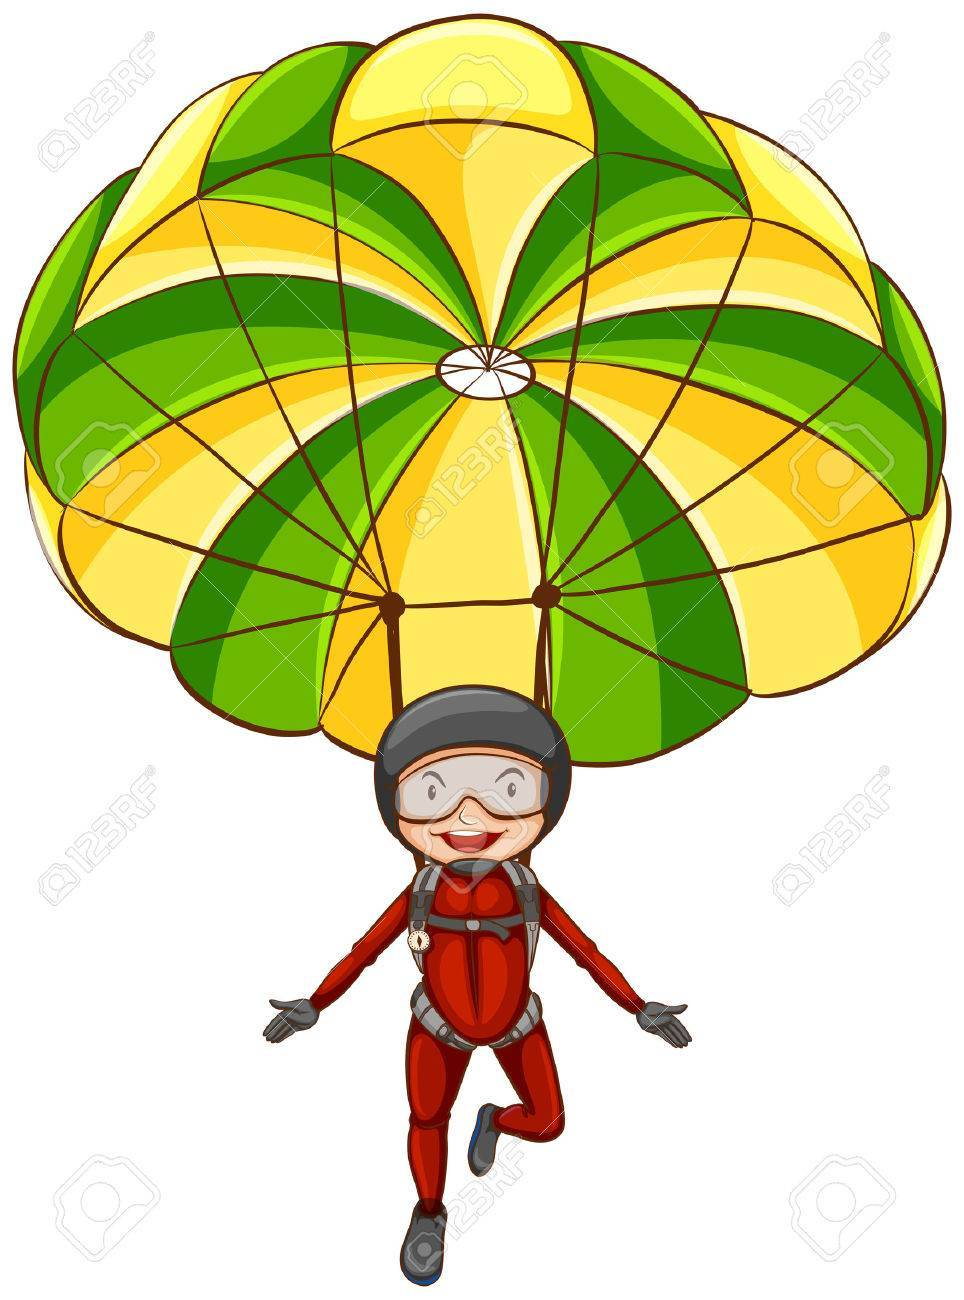 Parachute clipart hd transparent library Free parachute clipart 4 » Clipart Portal transparent library